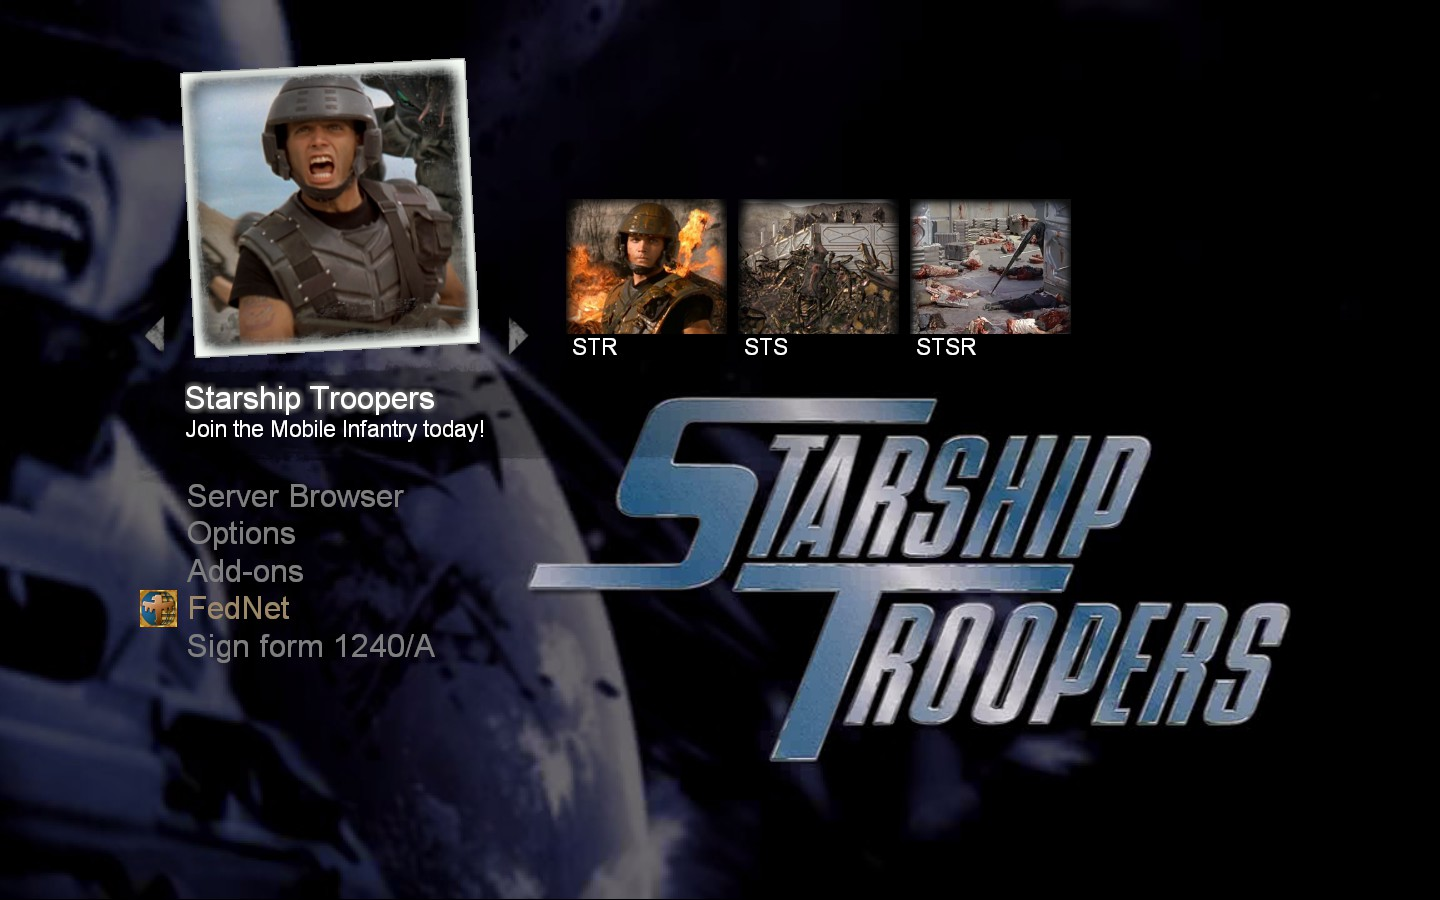 L4D2 Starship Troopers mod for Left 4 Dead 2 - Mod DB